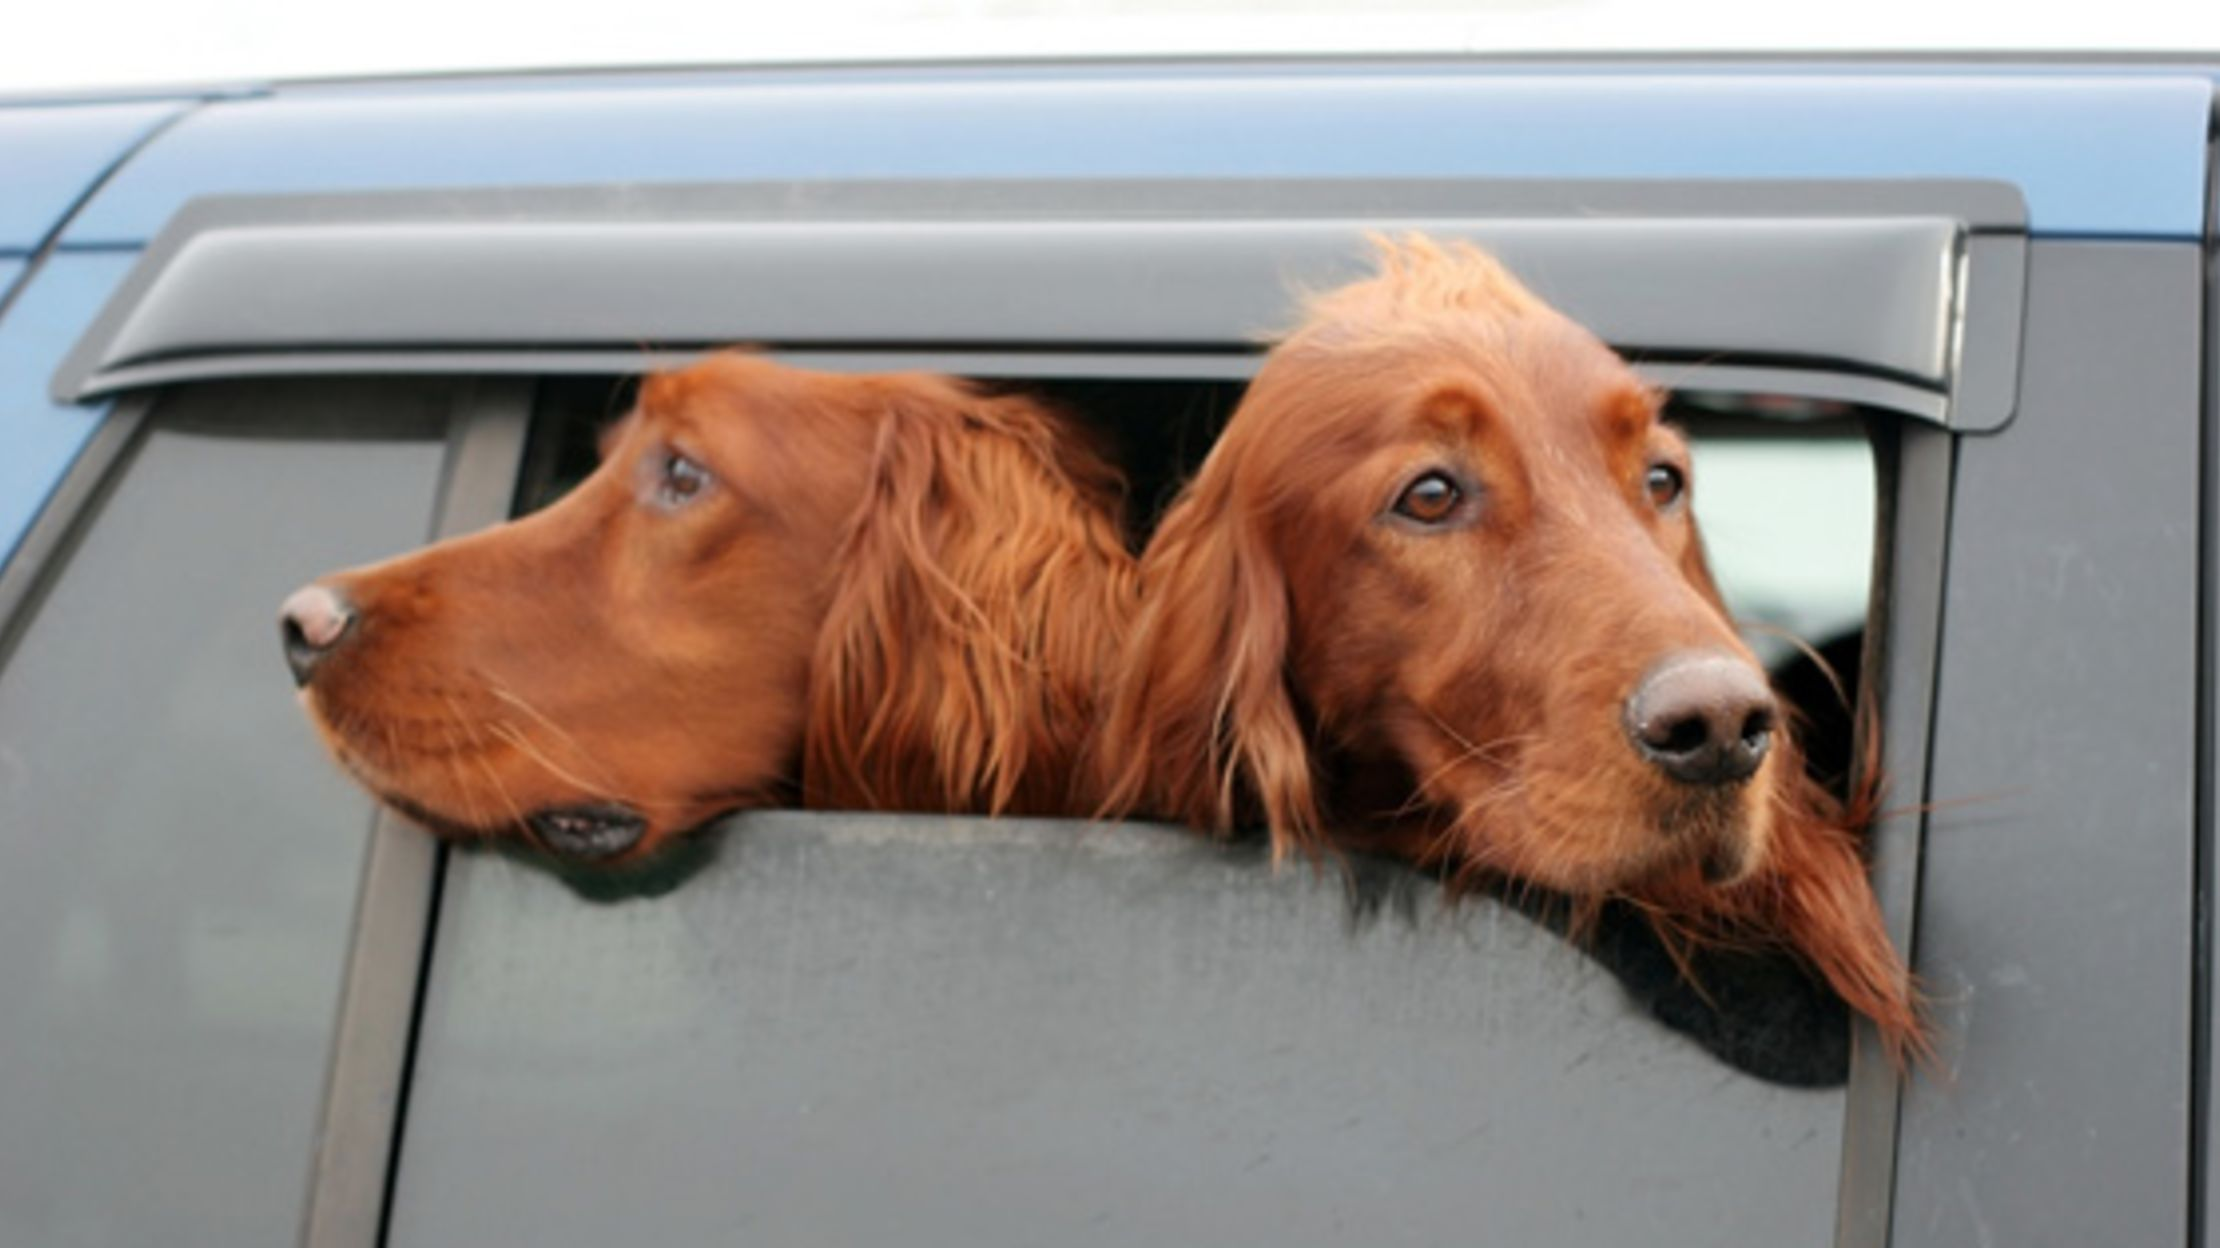 why do dogs stick their heads out of car windows? | mental floss